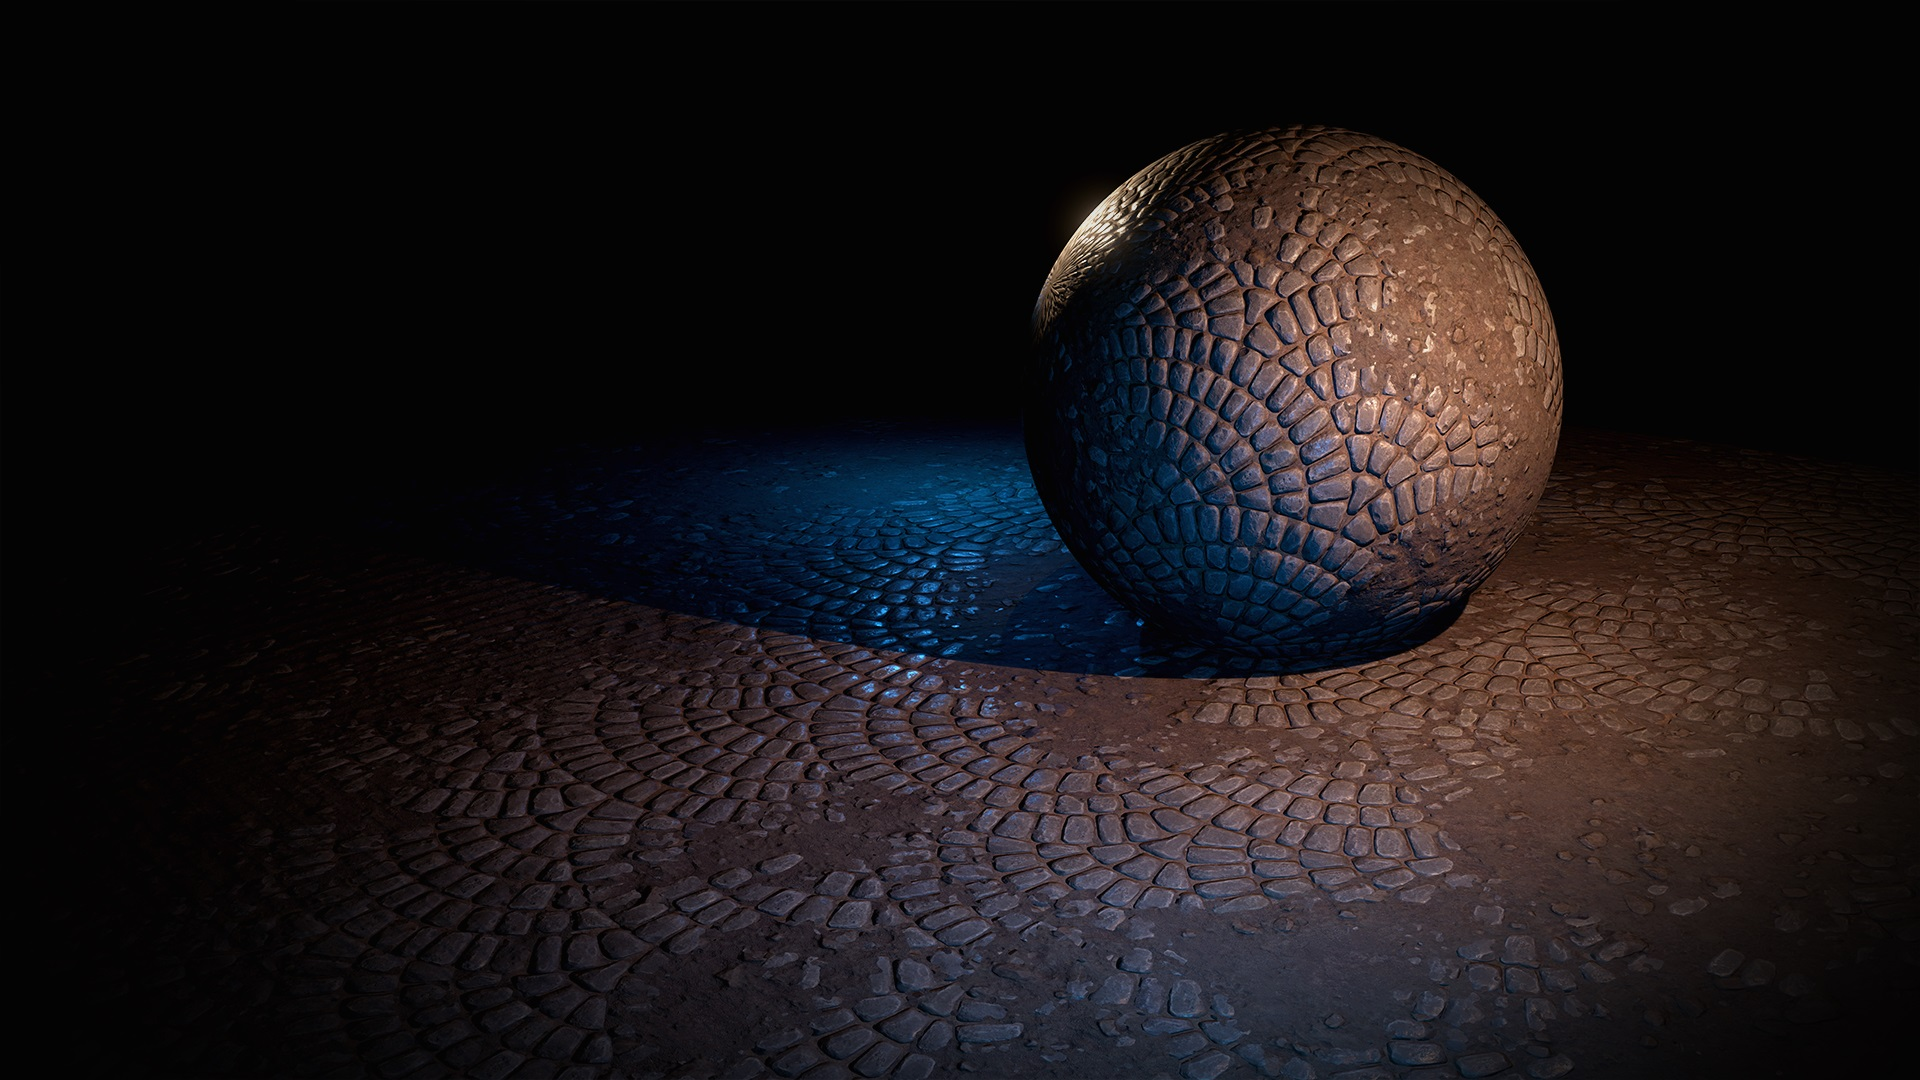 tileable texture creation in zbrush pluralsight